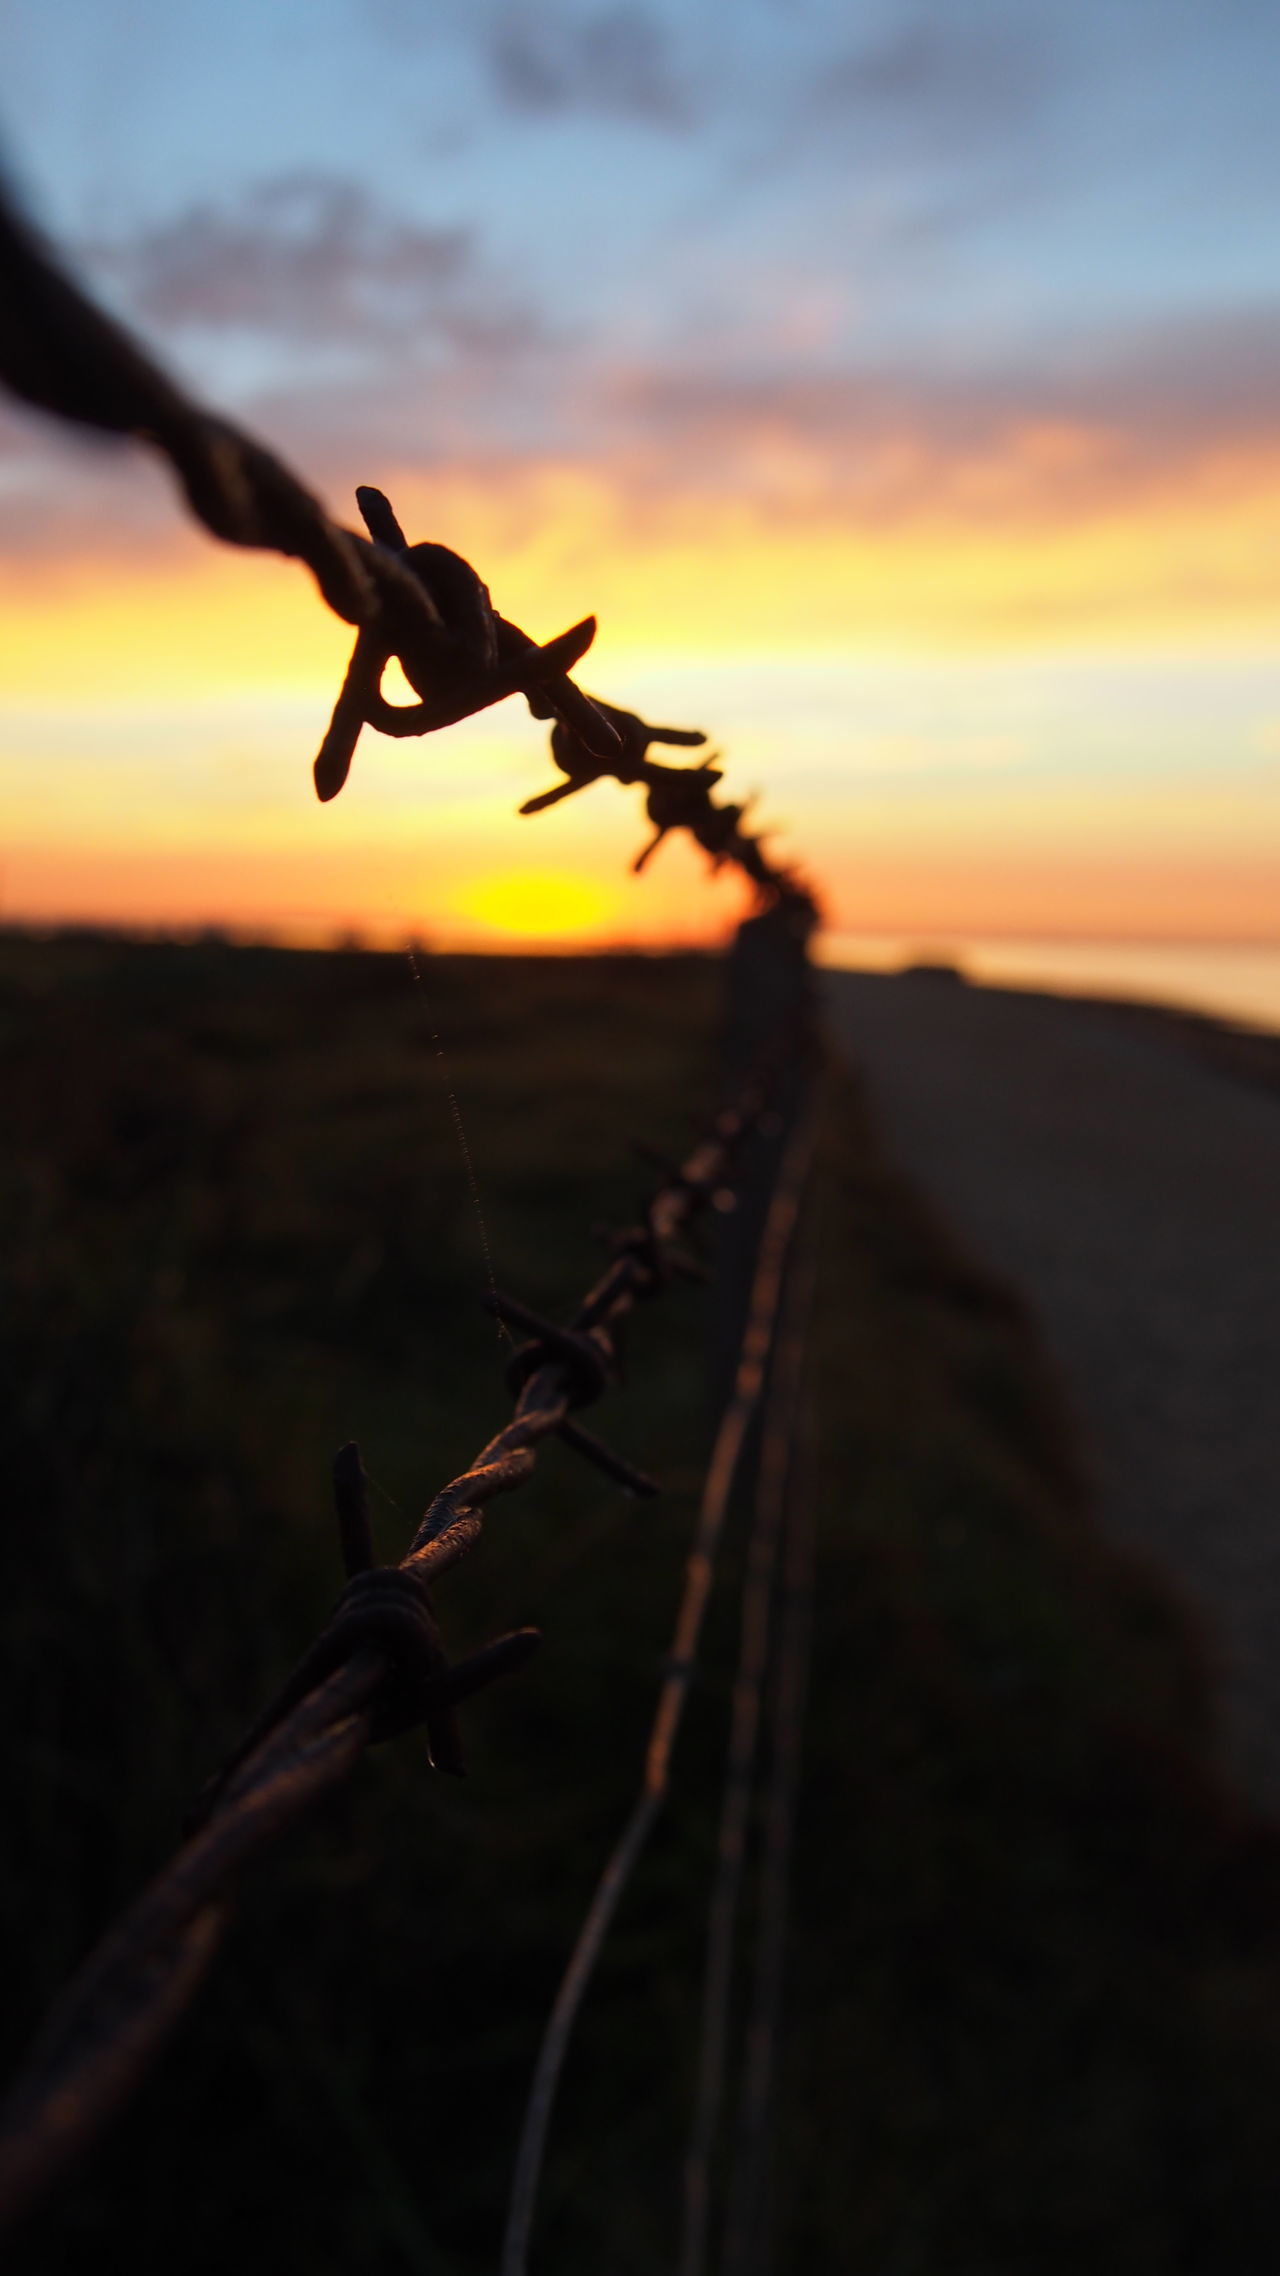 Beautiful stock photos of sunset, focus on foreground, close-up, no people